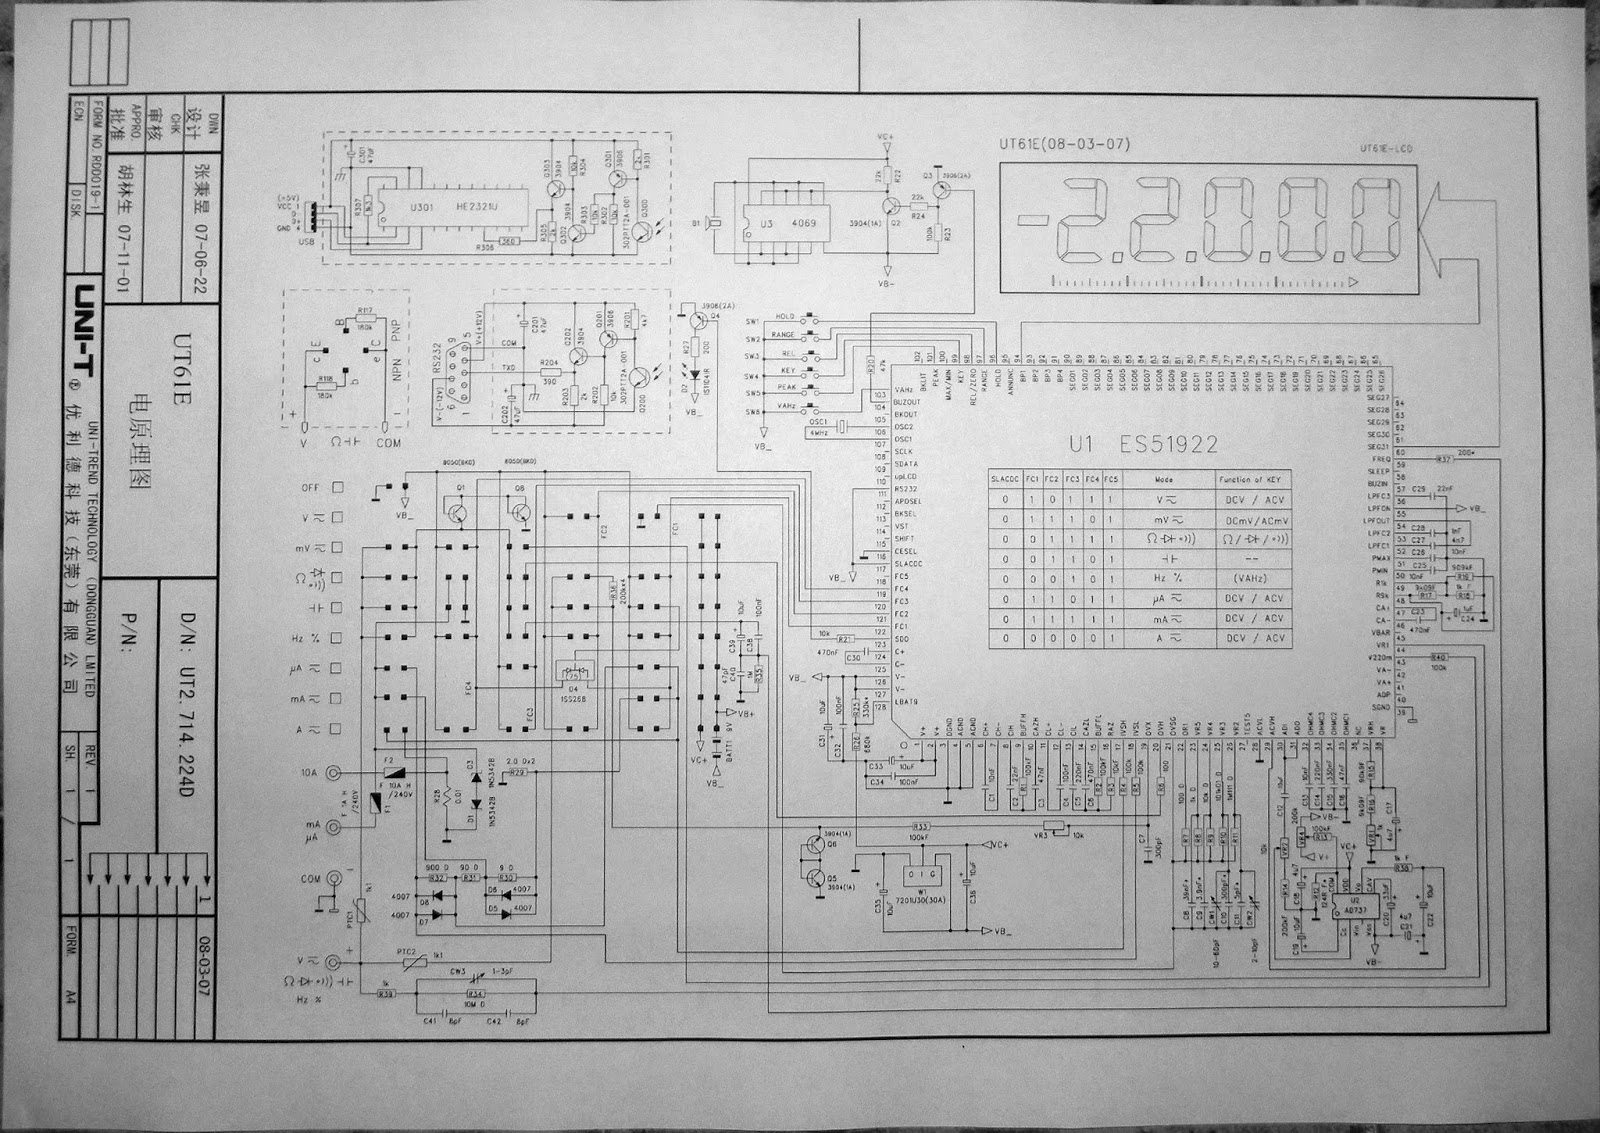 Embedded Systems Schematic Diagrams And Circuits 600 Watt Hifi Power Amplifiers Pa600 Print Out Quality On A3 Size